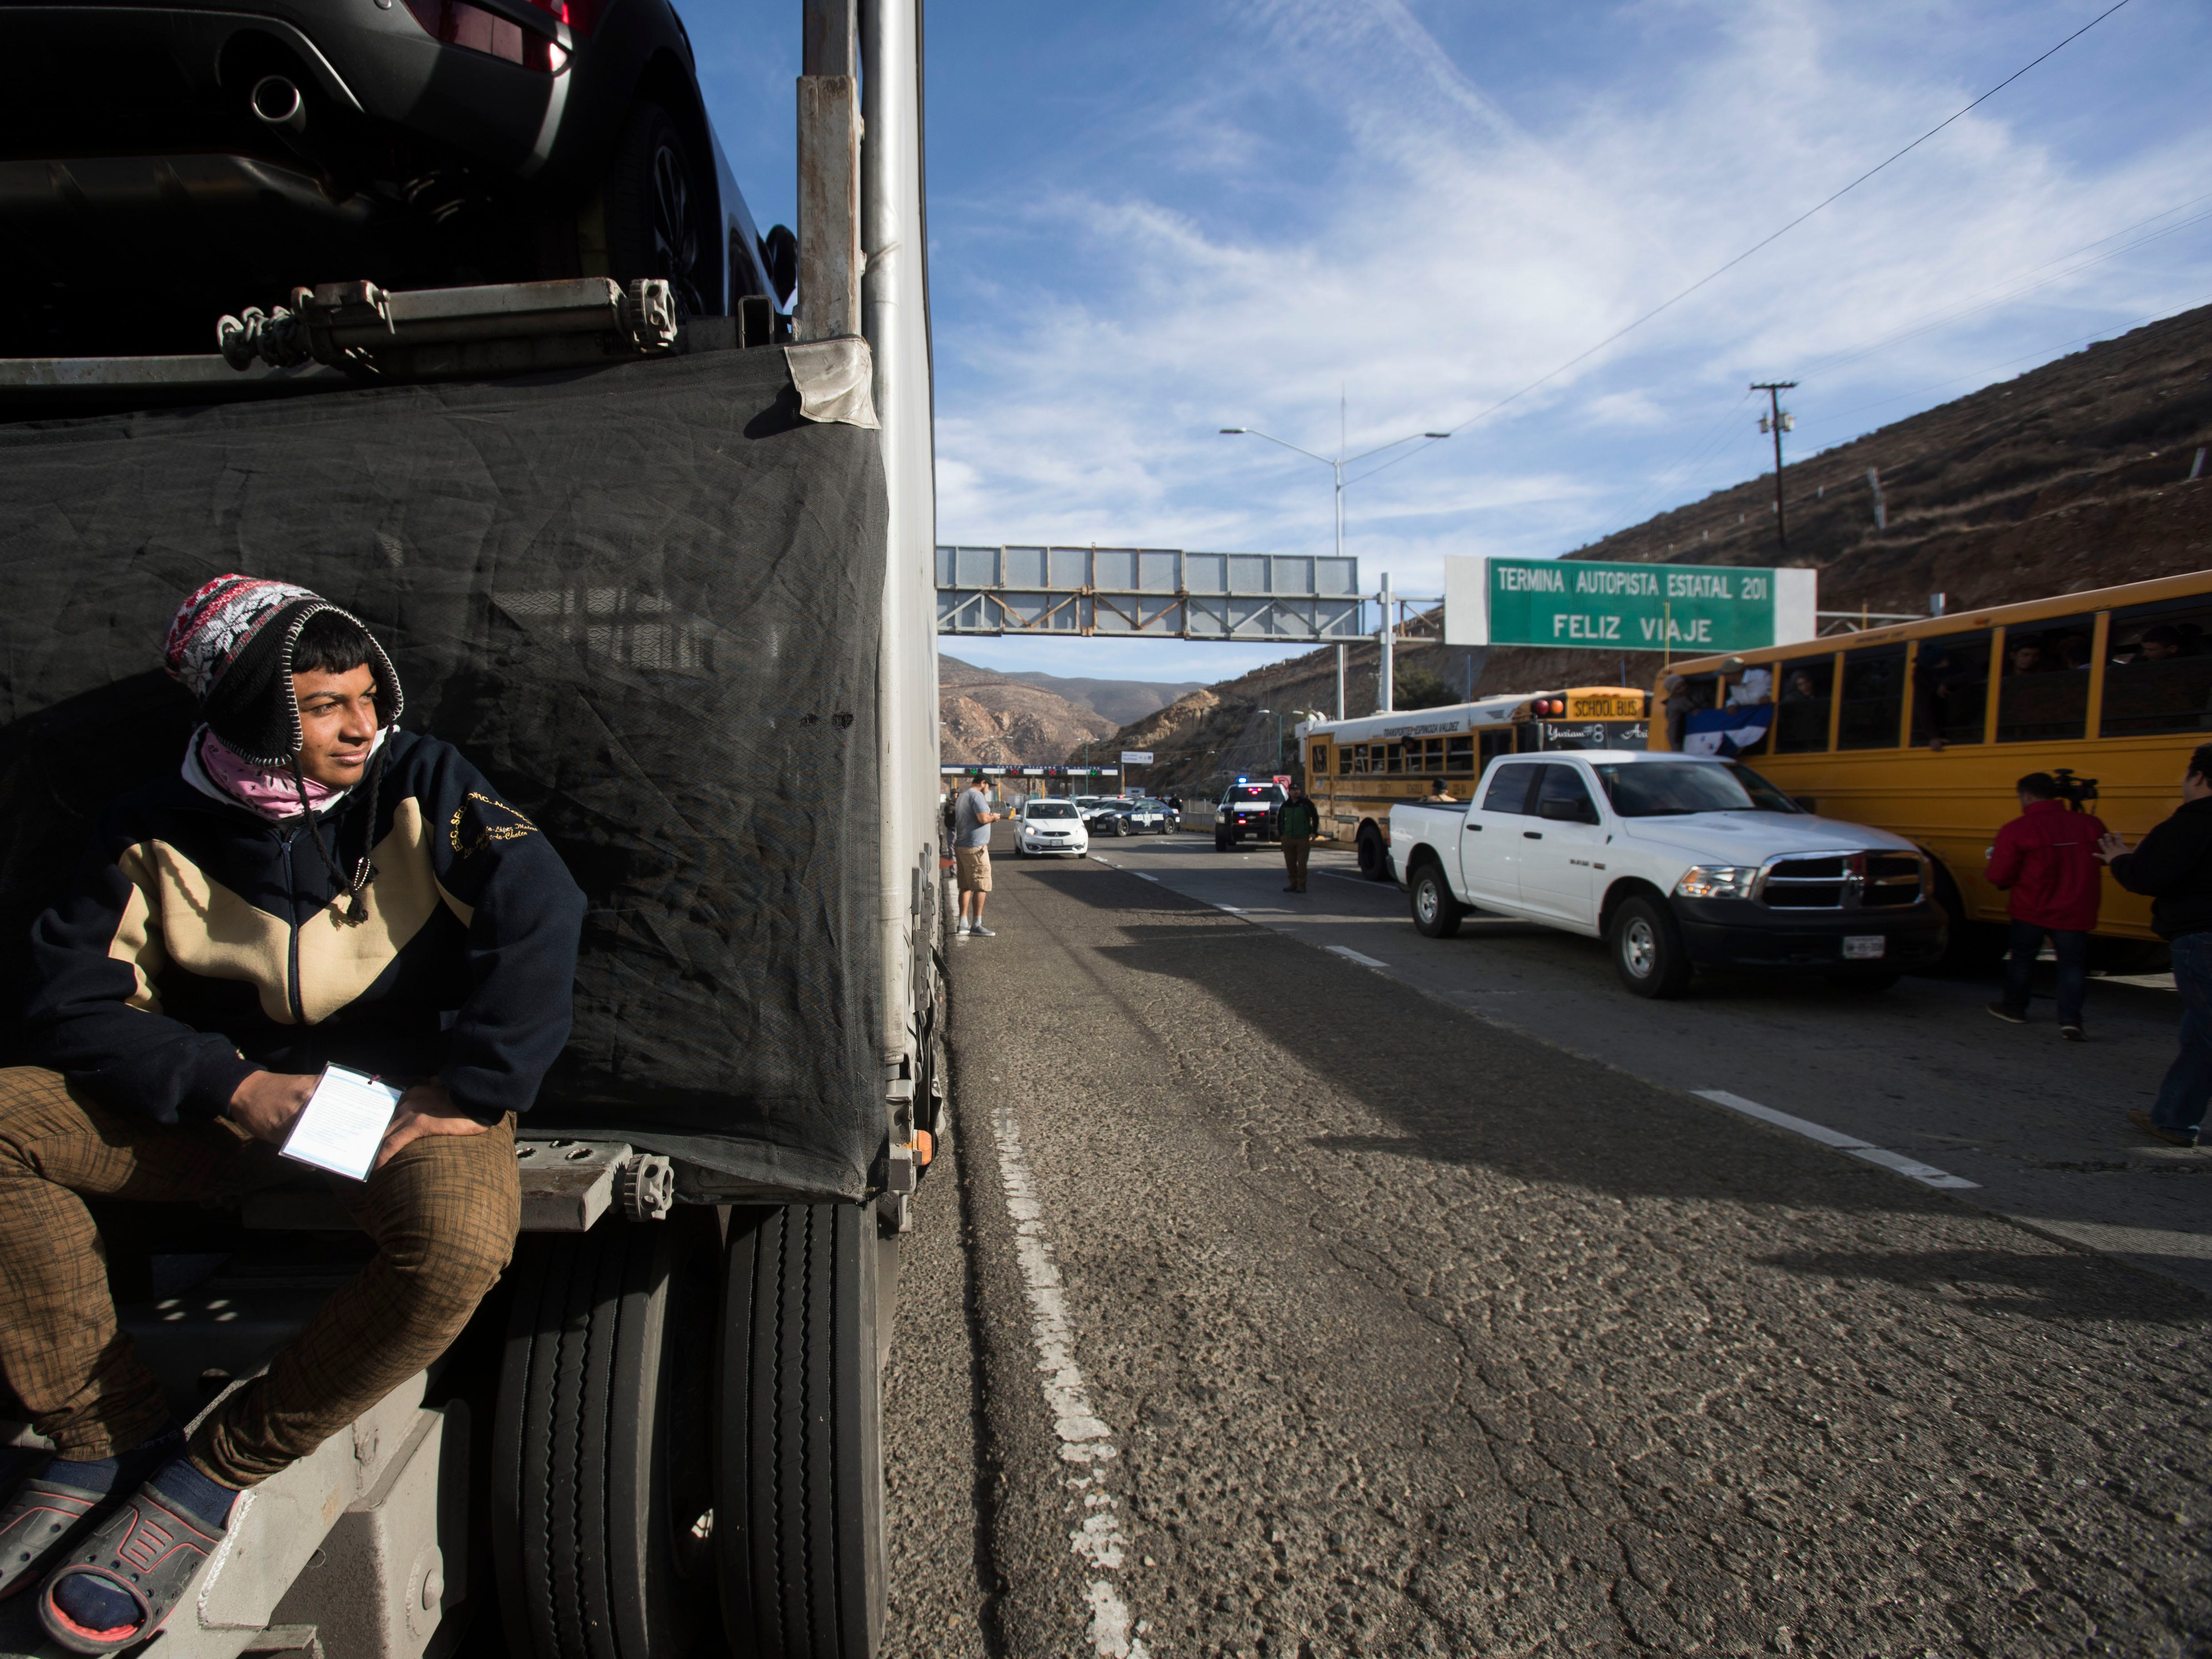 The first waves of the migrant caravan have arrived at U.S.-Mexico border; thousands more expected in coming days